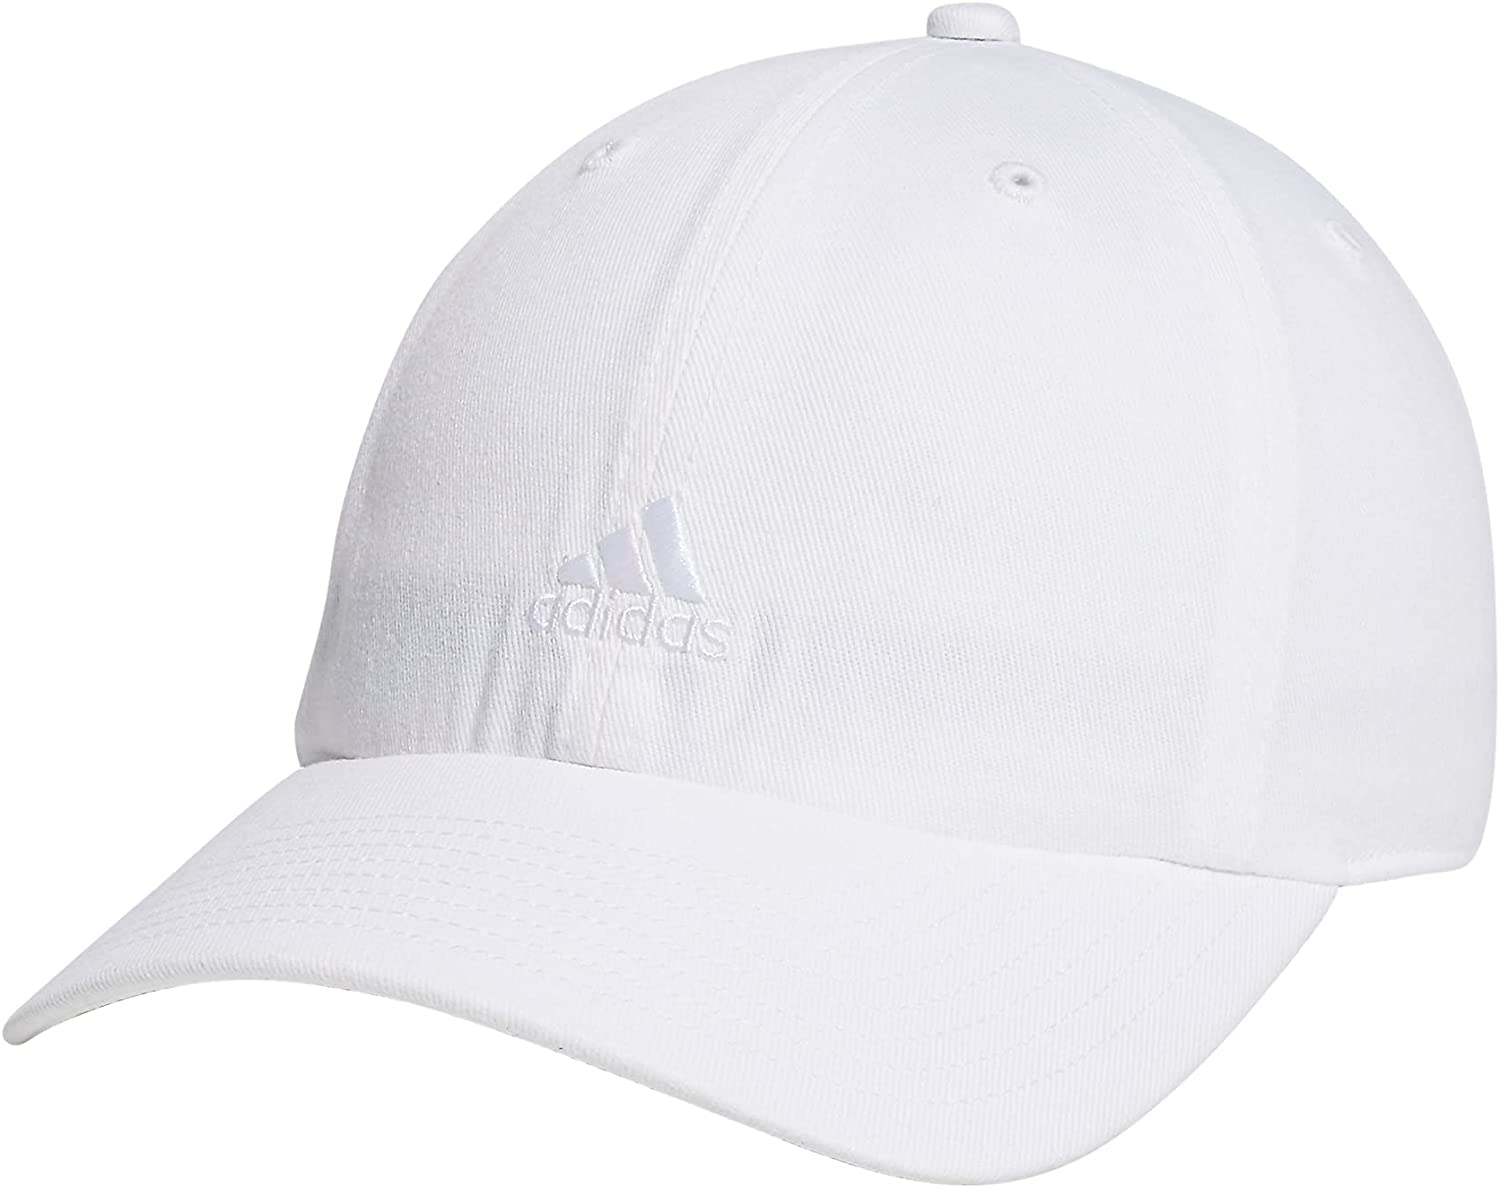 adidas Women's Saturday 2.0 Relaxed Adjustable Cap